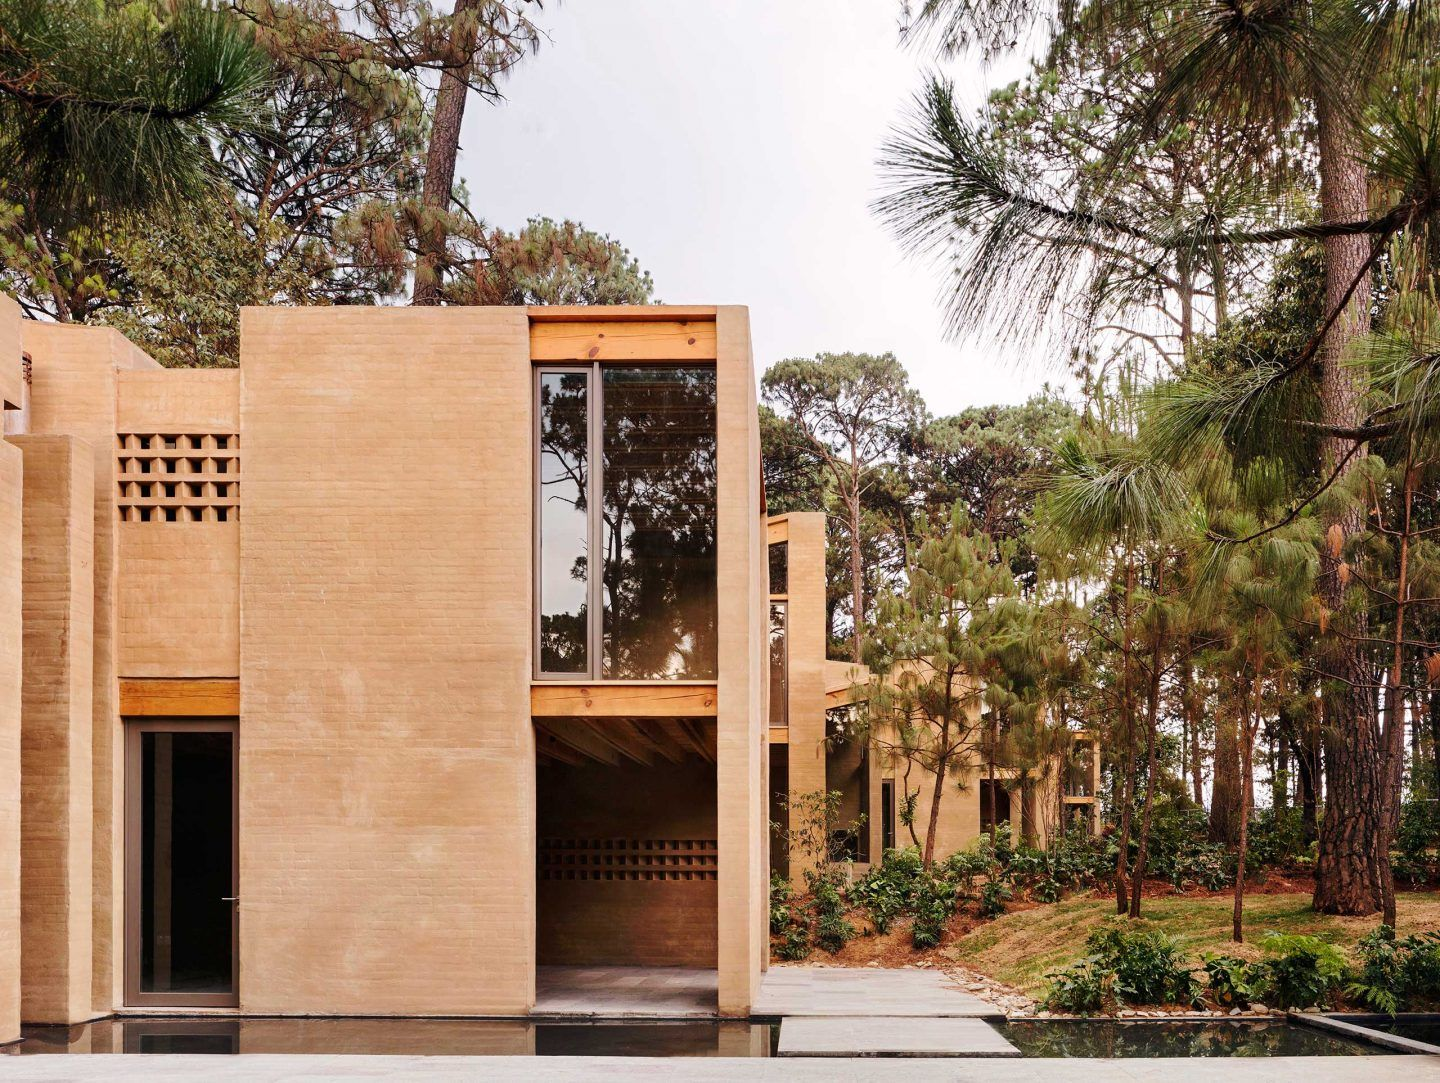 IGNANT-Architecture-Taller-Hector-Barroso-Entre-Pinos-11